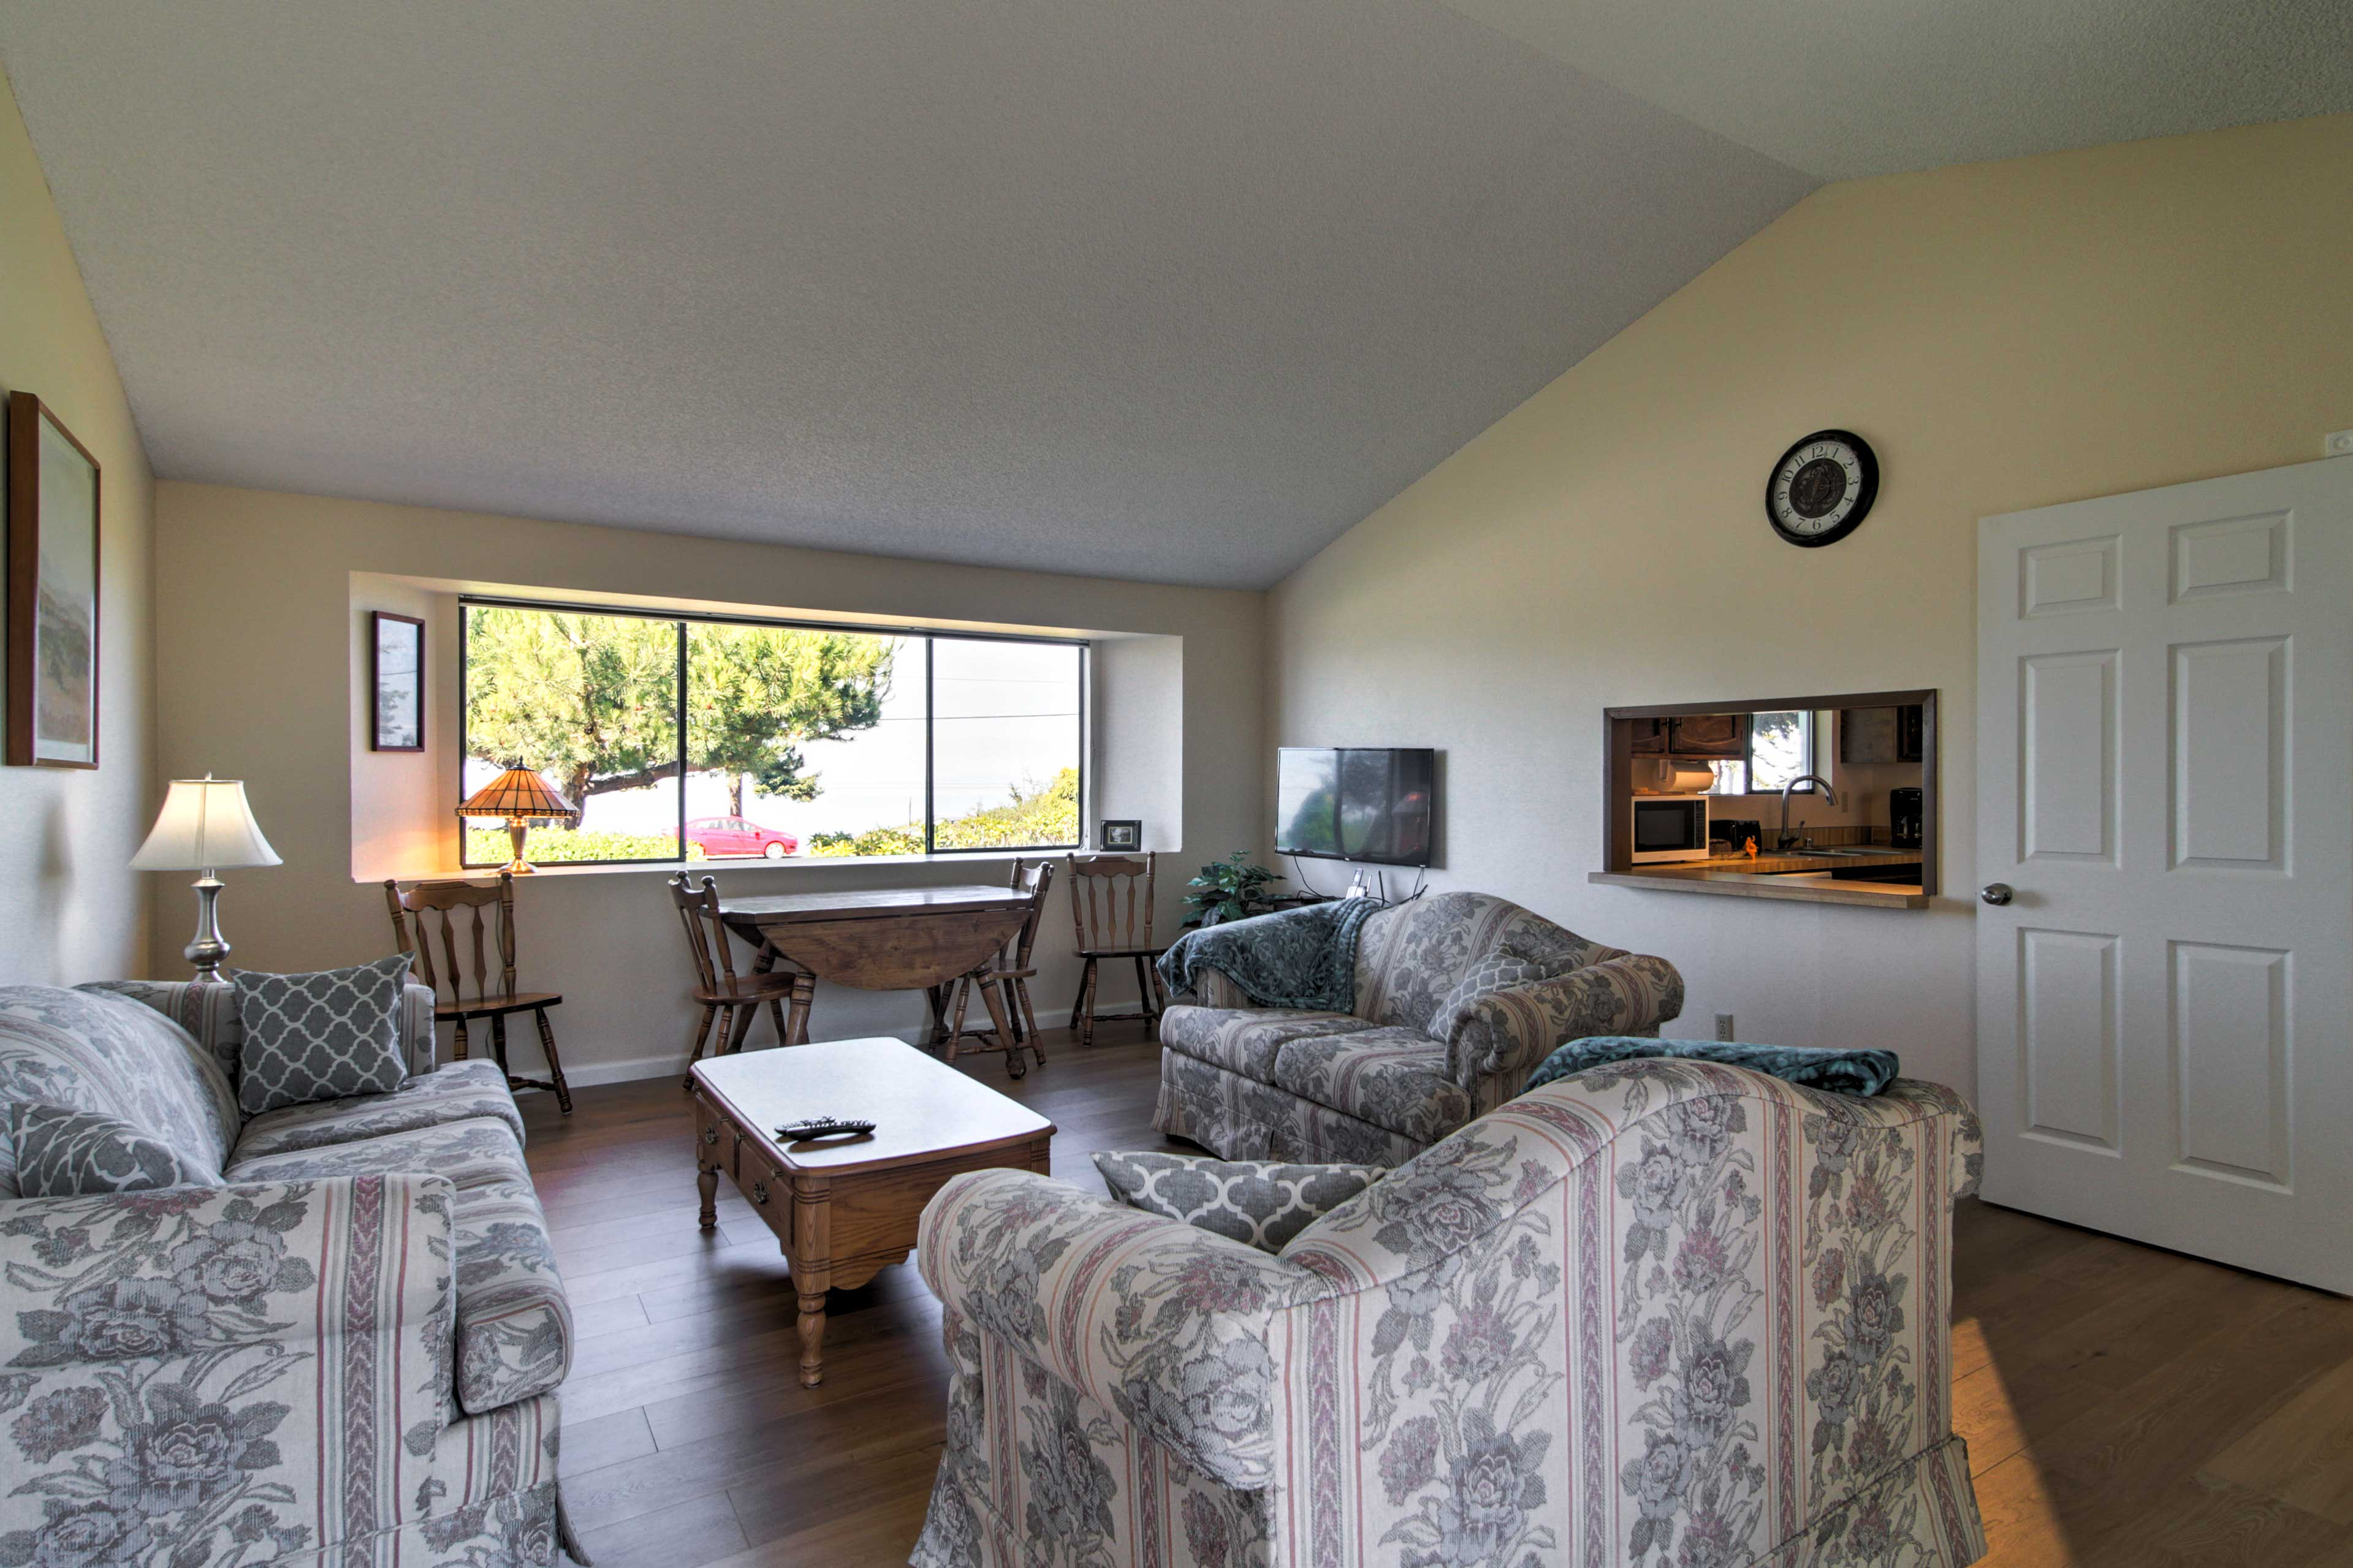 This living room has comfy furniture with a pass-through kitchen window.